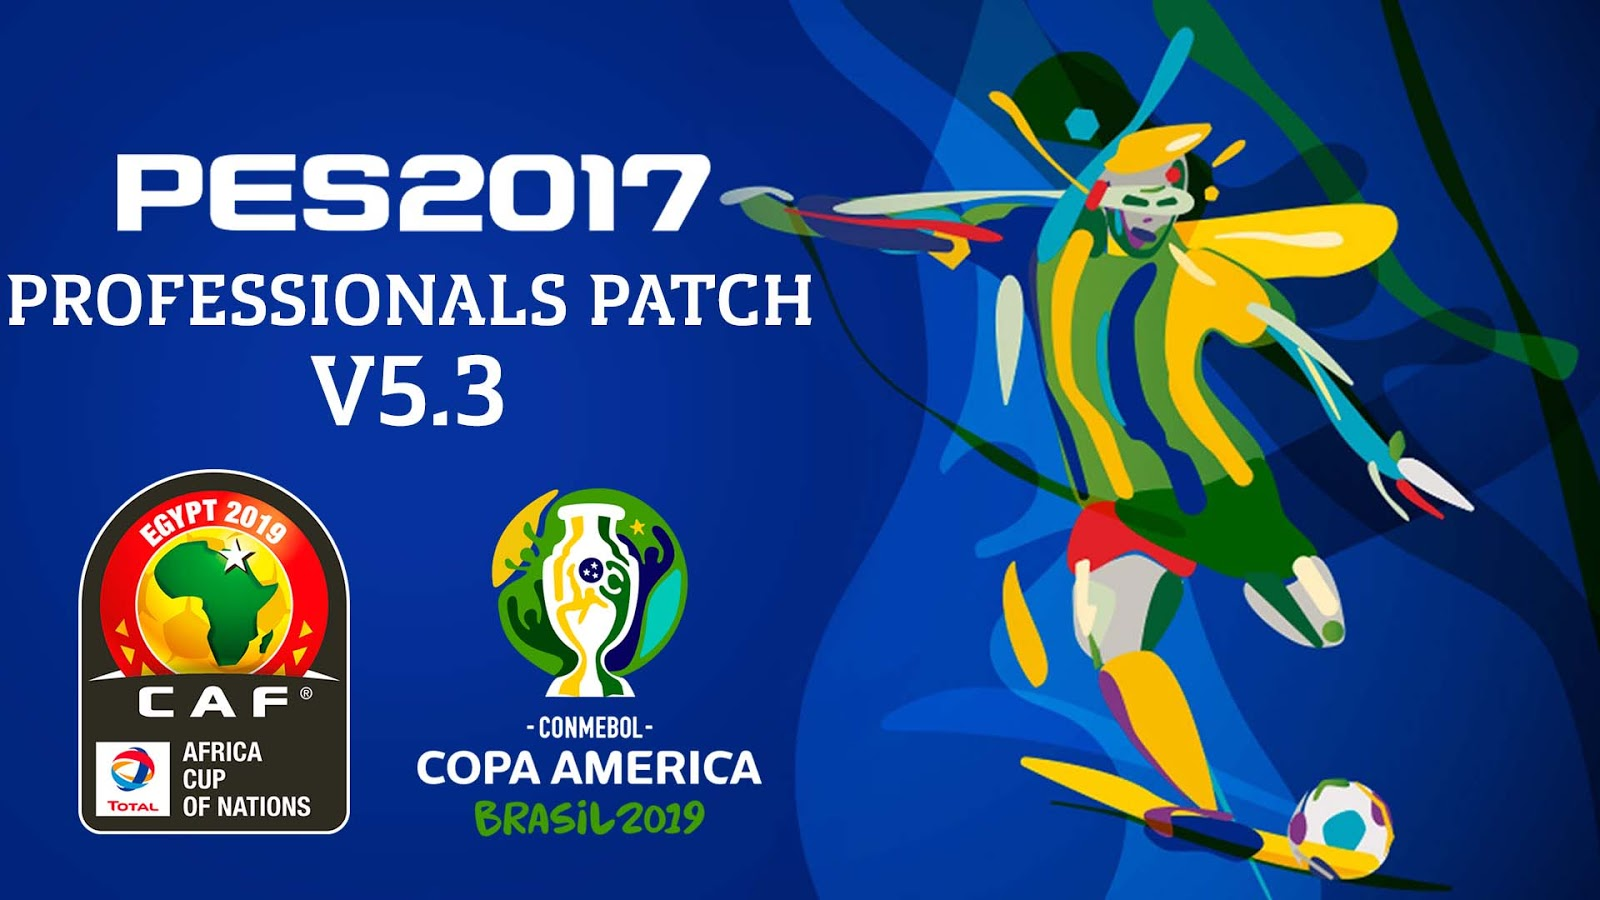 PES 2017 PES Professionals Patch 2017 Update v5 3 Copa